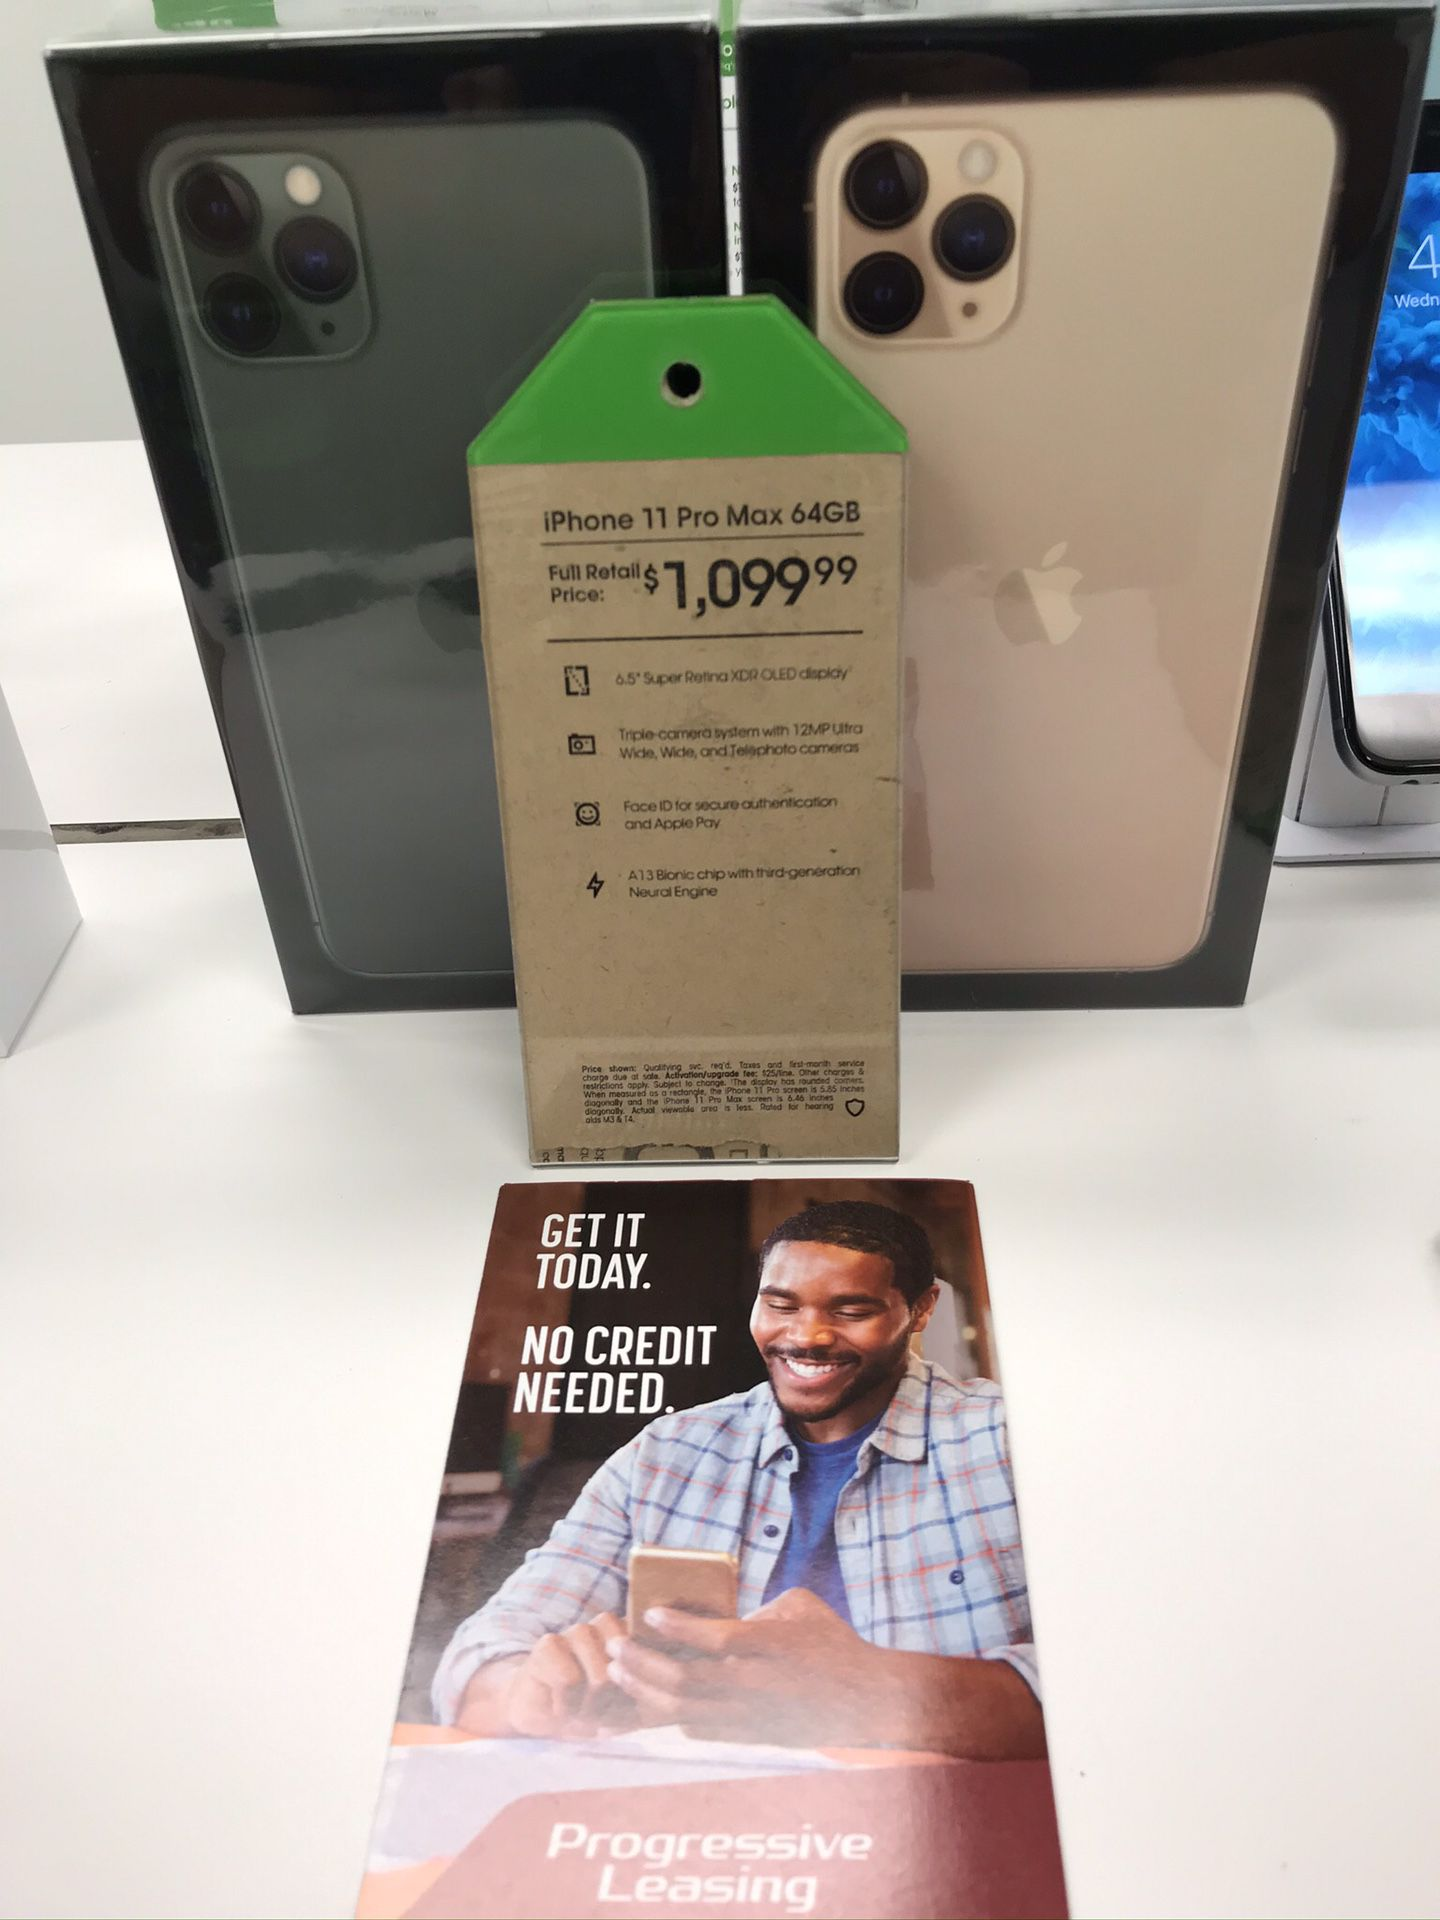 IPhones starting at $49.99 with Progressive Leasing